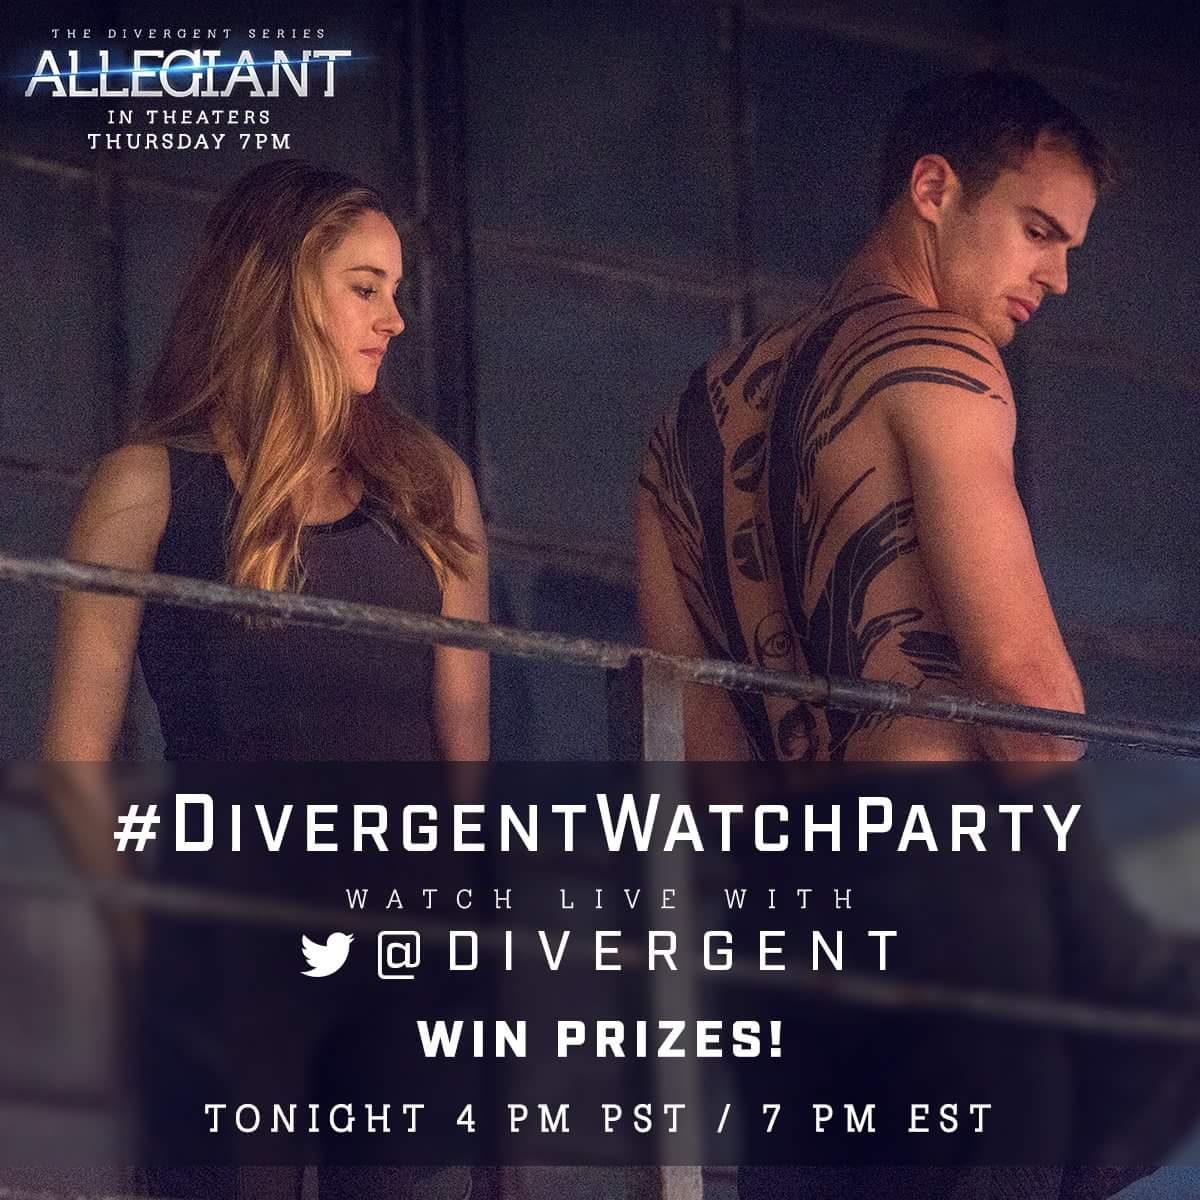 45 minutes until the #DivergentWatchParty,  who's ready for the fun? - @Divergent https://t.co/BwZklgVbrx